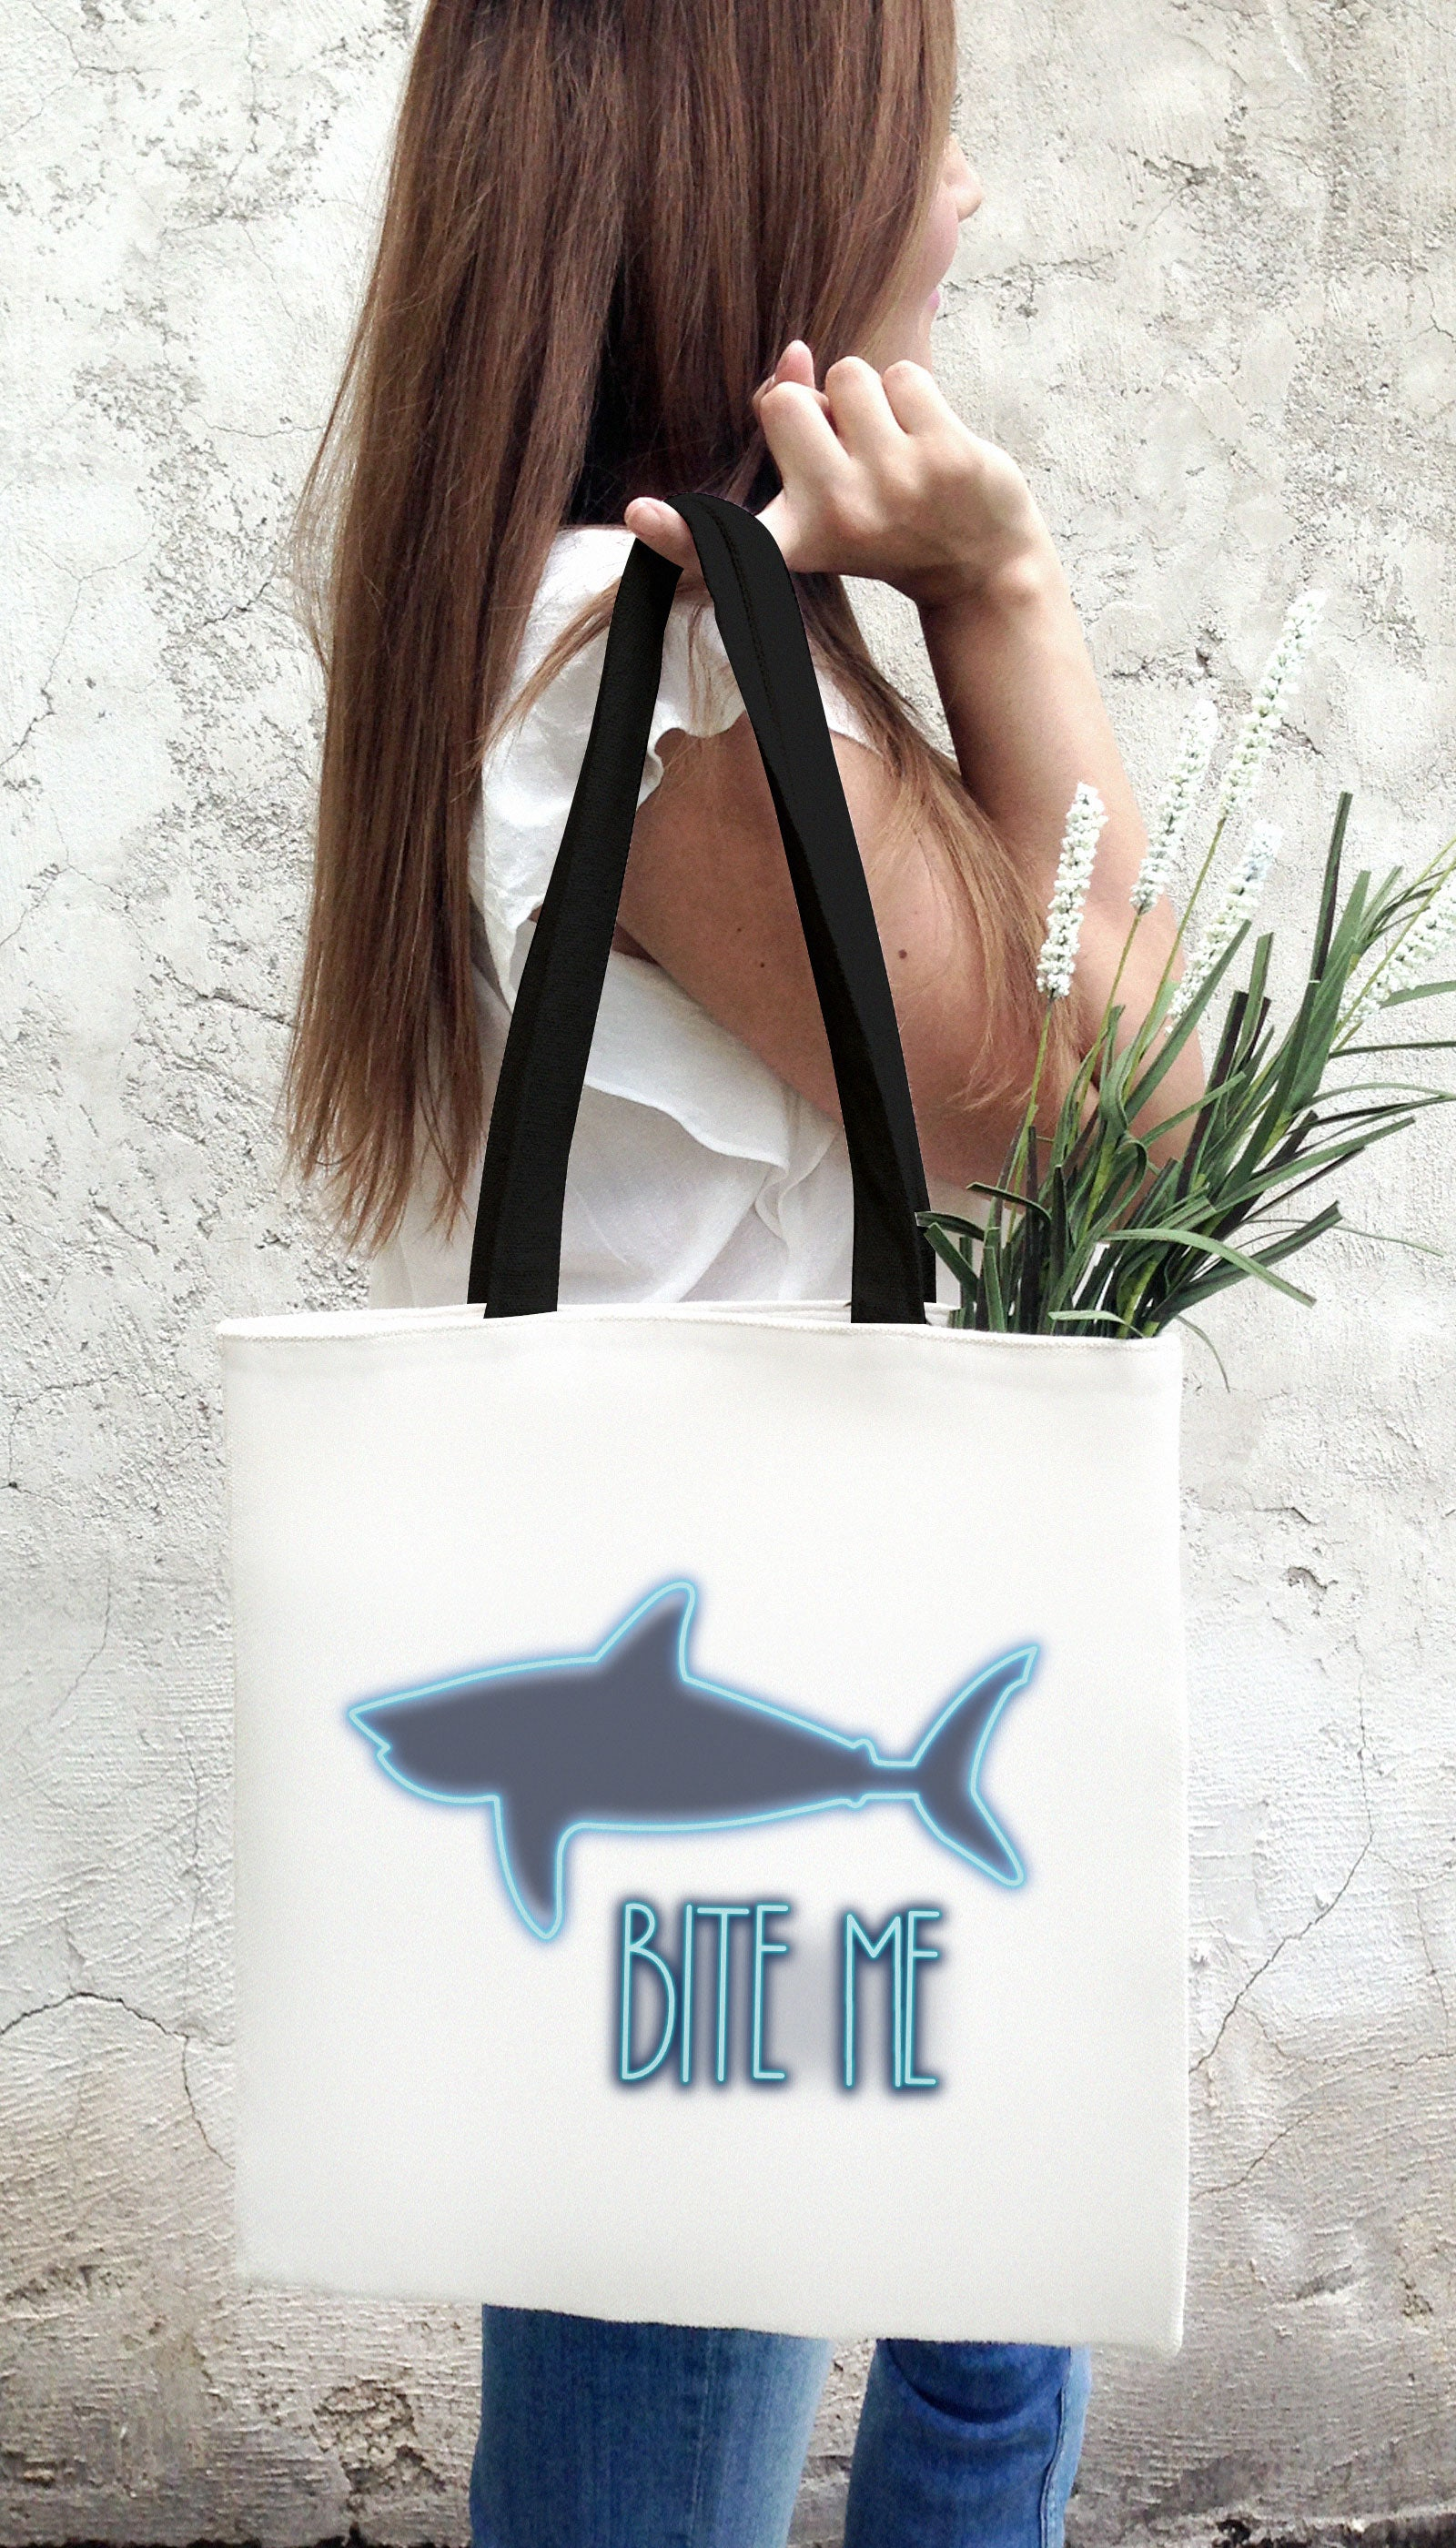 Bite Me Funny & Clever Tote Bag Gift | Sarcastic ME